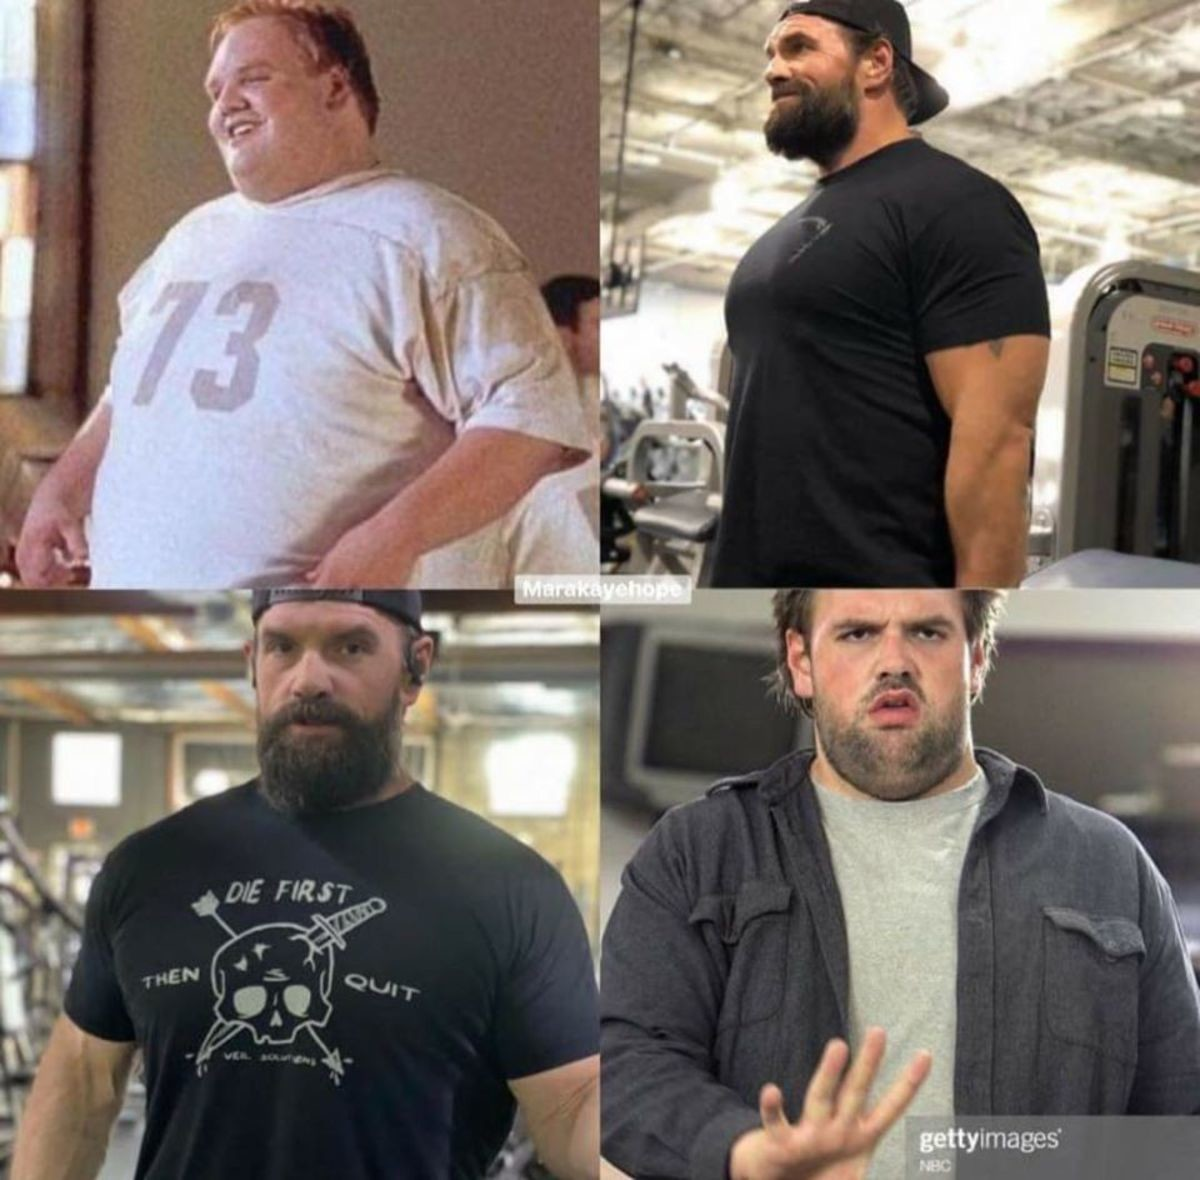 Ethan Suplee is jacked now.. There's hope for us all kings. Stay motivated out there, look for help when you need it, keep your eye on the prize... Hopefully he can see the sailboat now....